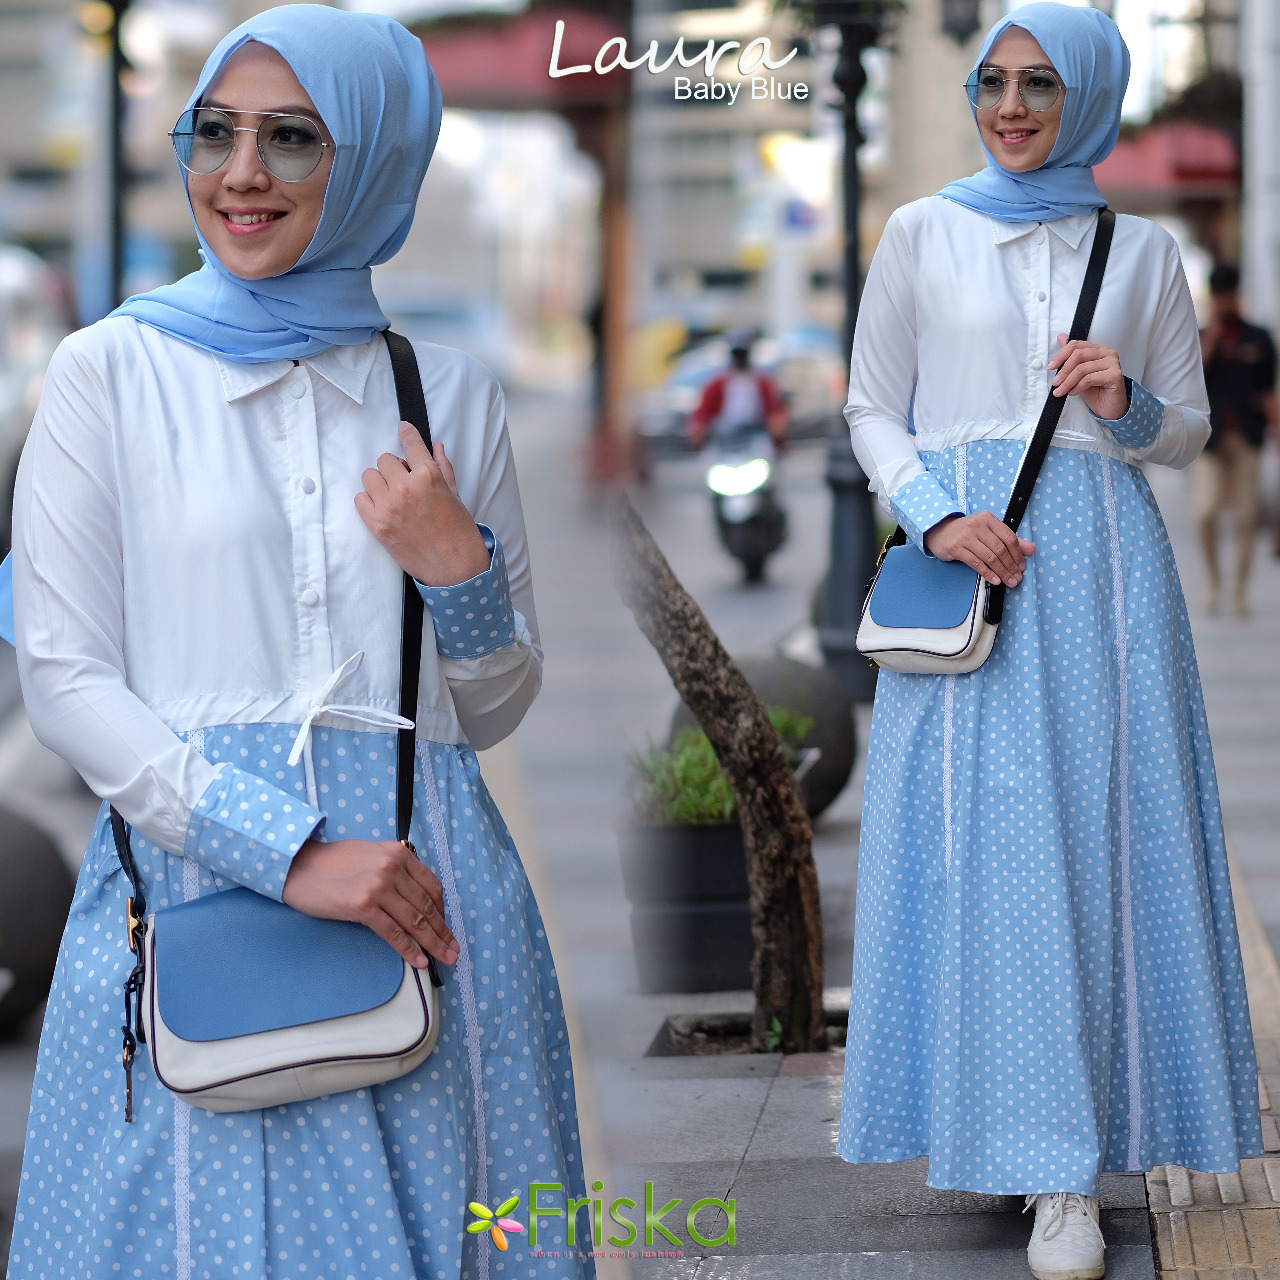 Laura By Friska Baby Blue